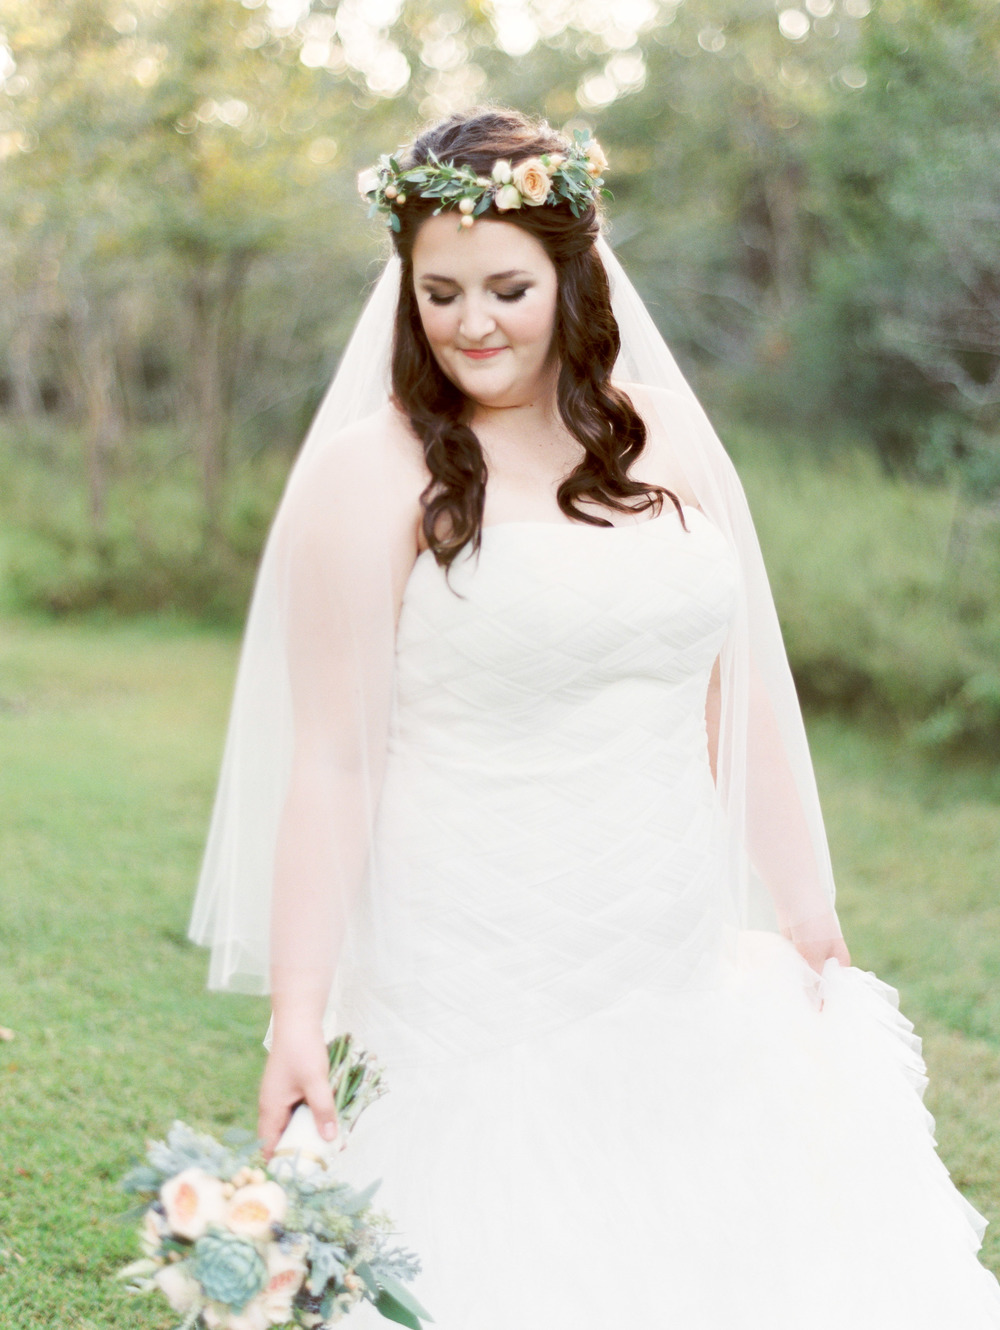 Sarah Best Photography - Elizabeth's Bridals - 7F Lodge-120.jpg